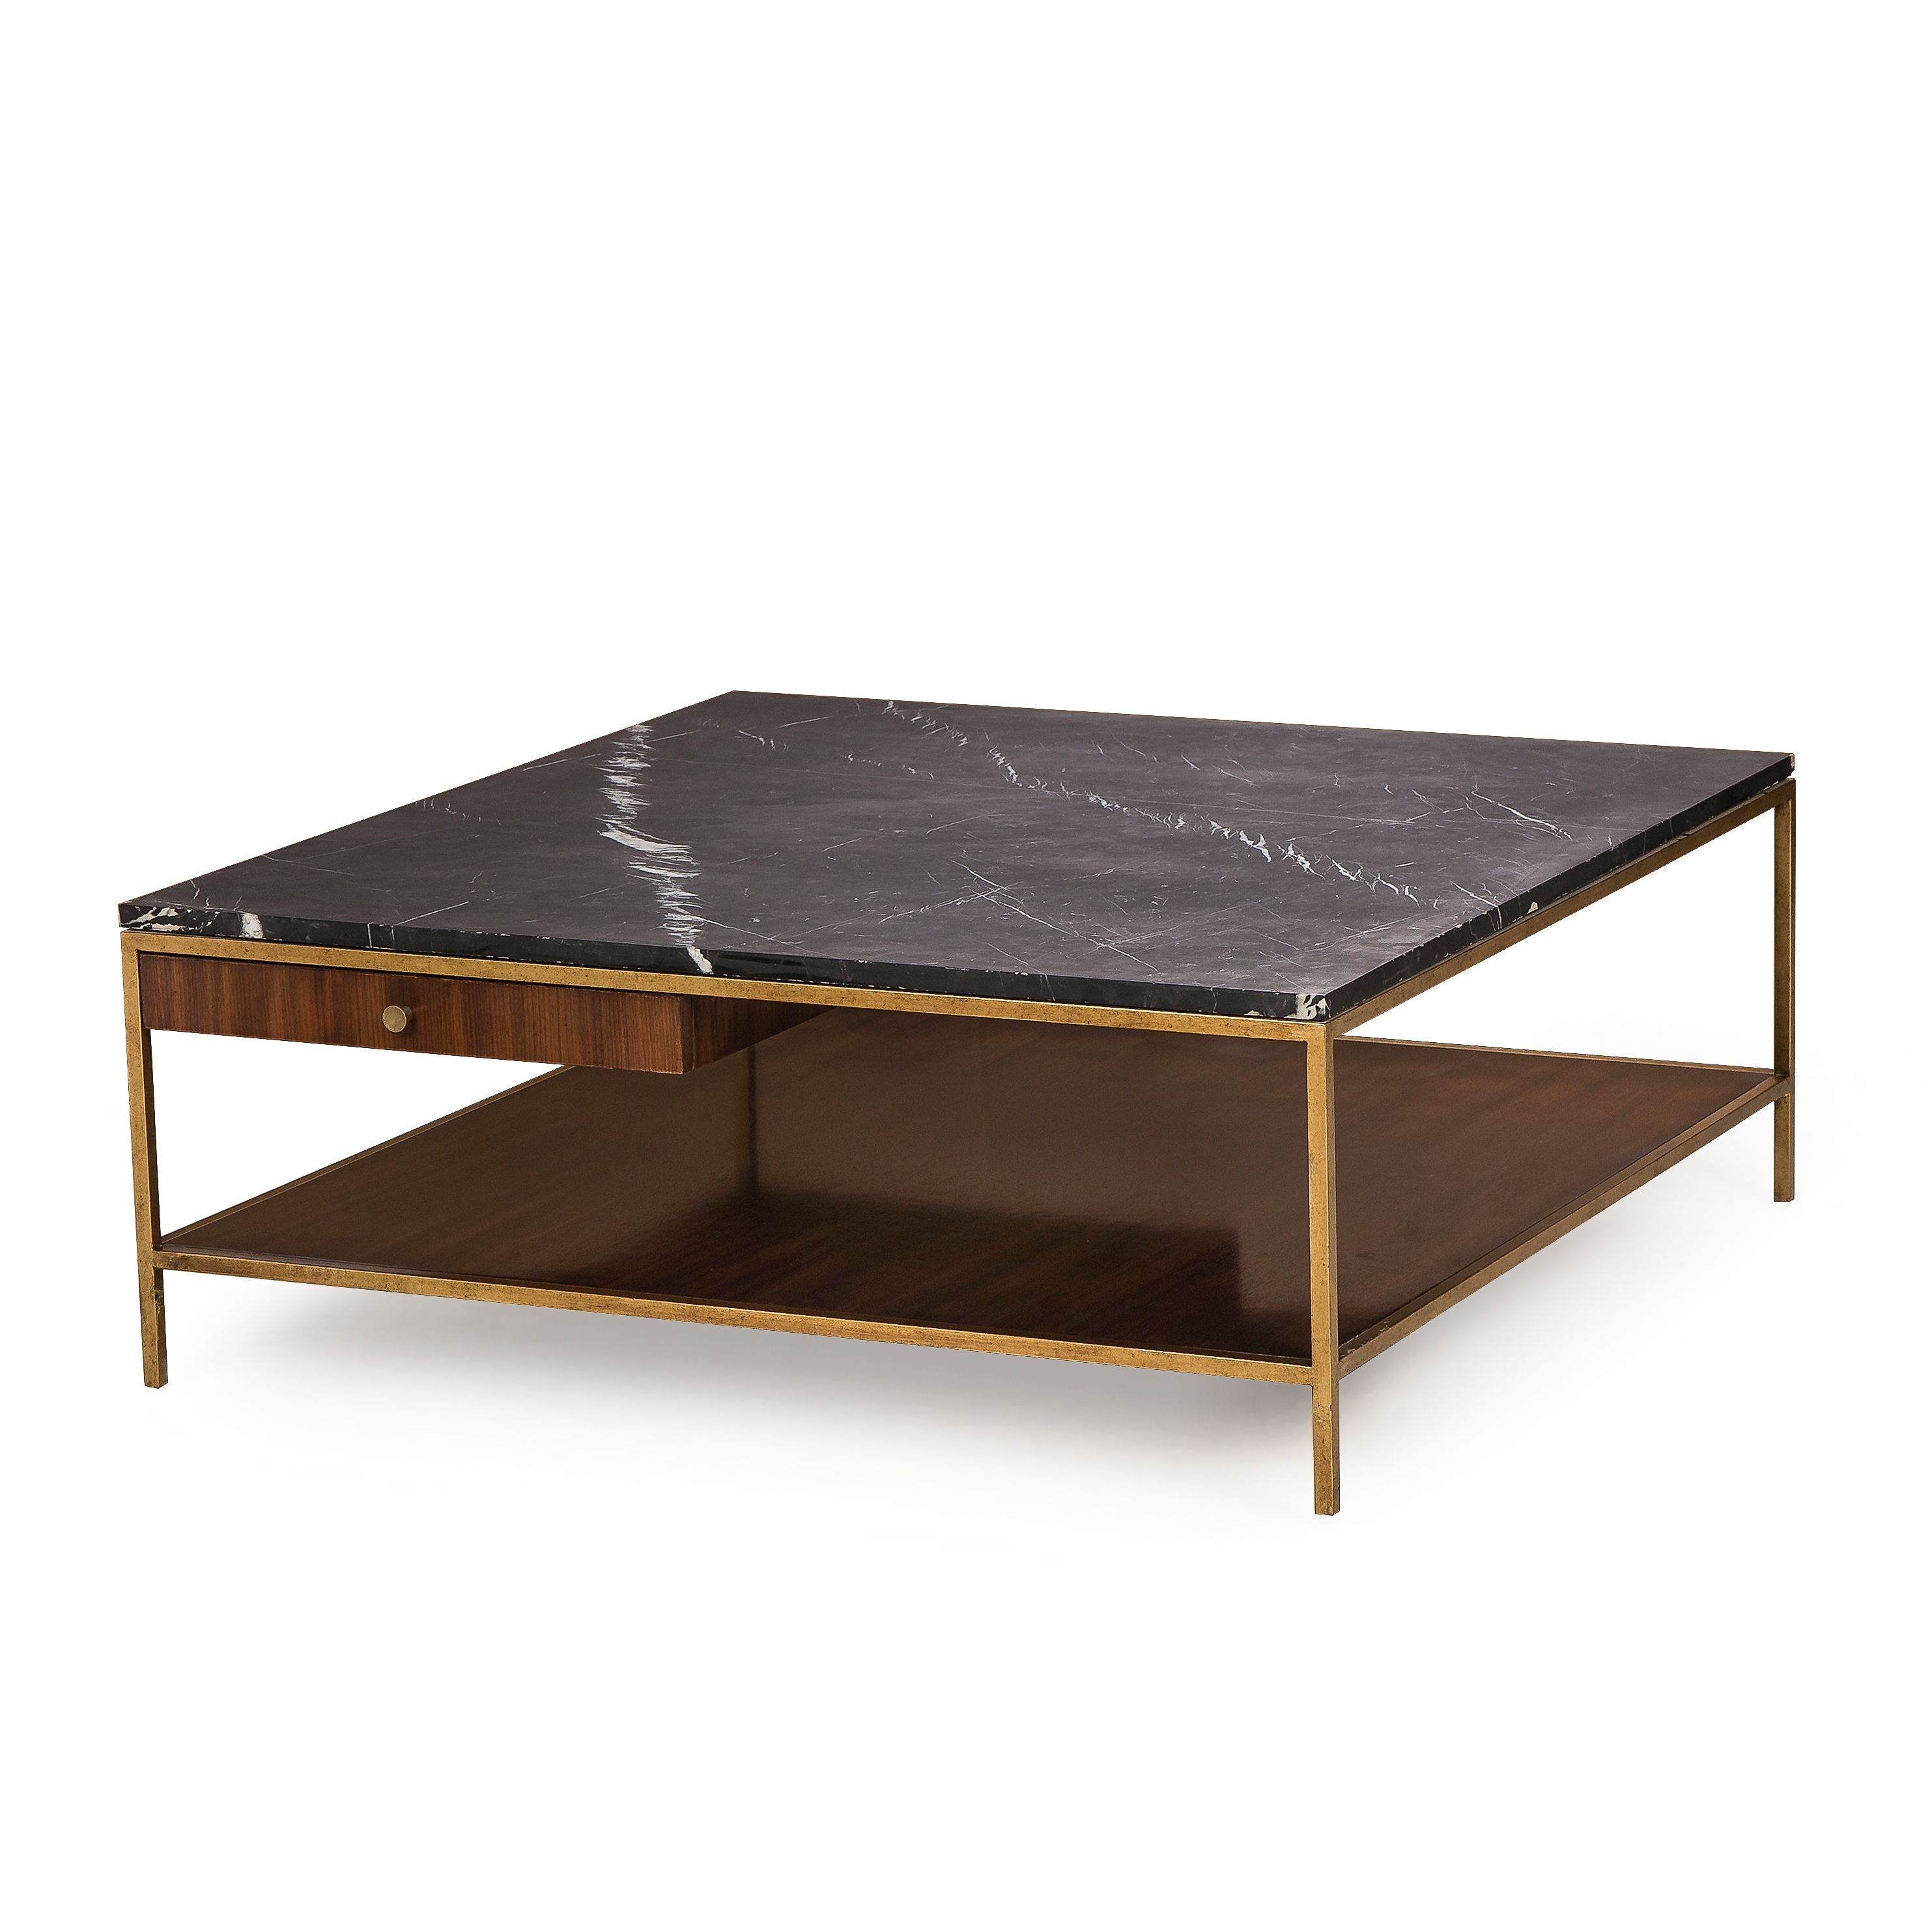 Nestor Black Marble Square Coffee Table On A Metal Base: Copeland Square Coffee